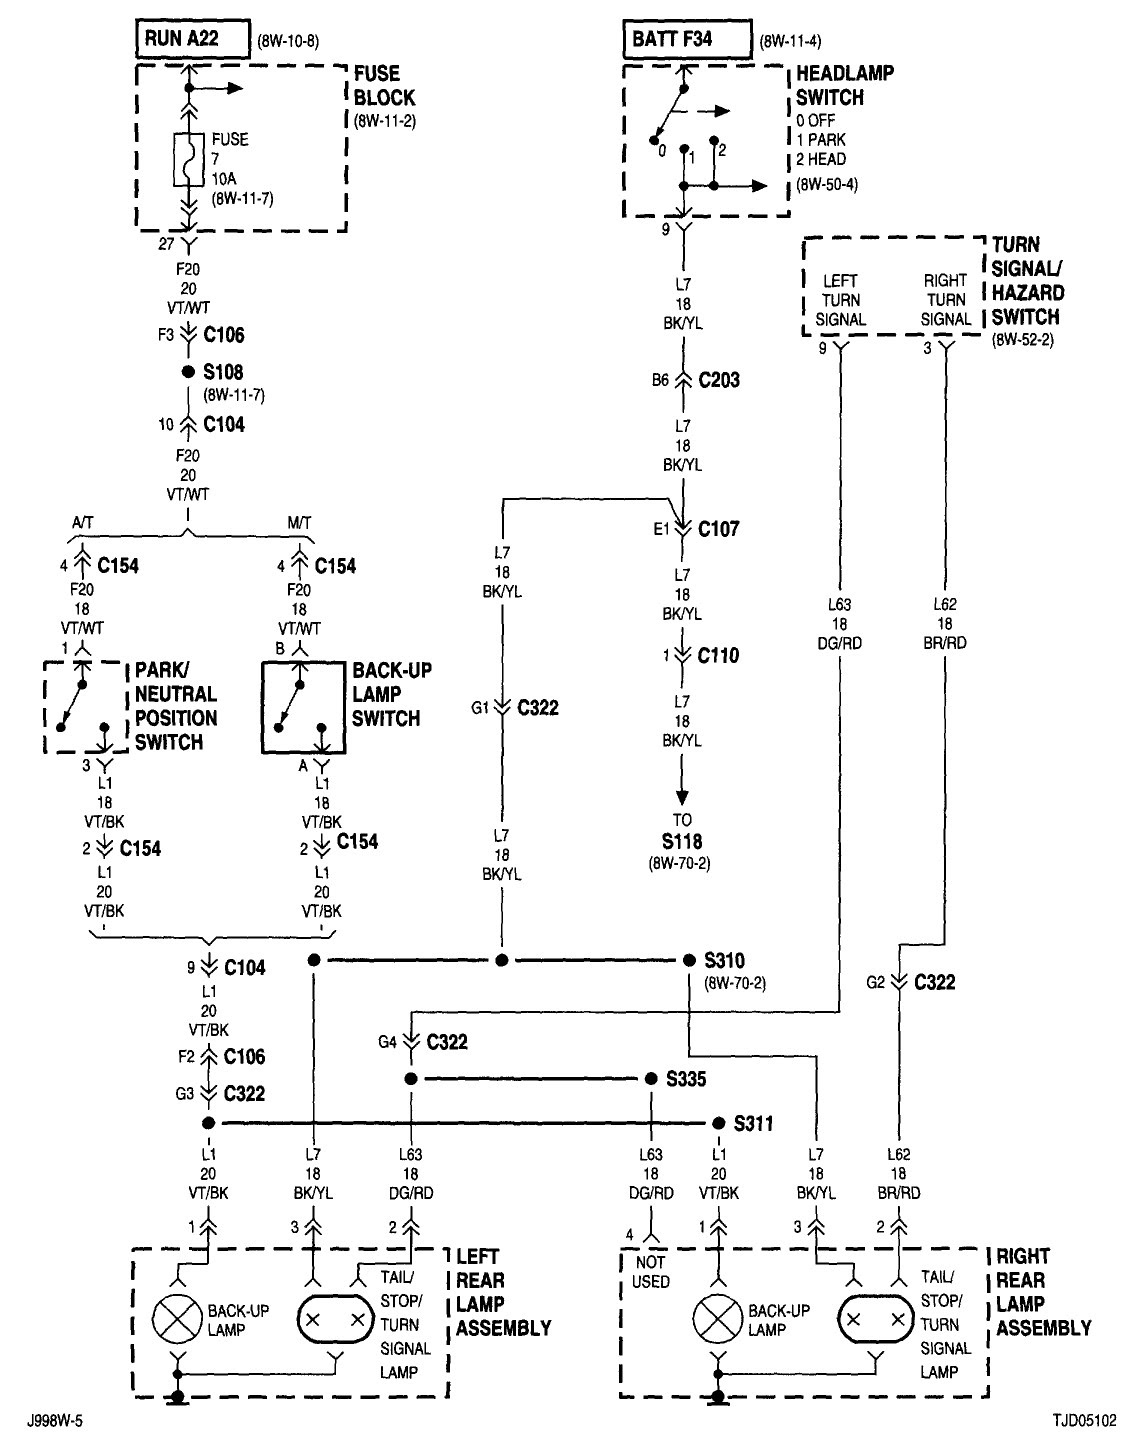 95 Jeep Cherokee Wiring Diagram Wiring Diagrams Post Last Indor Last Indor Michelegori It